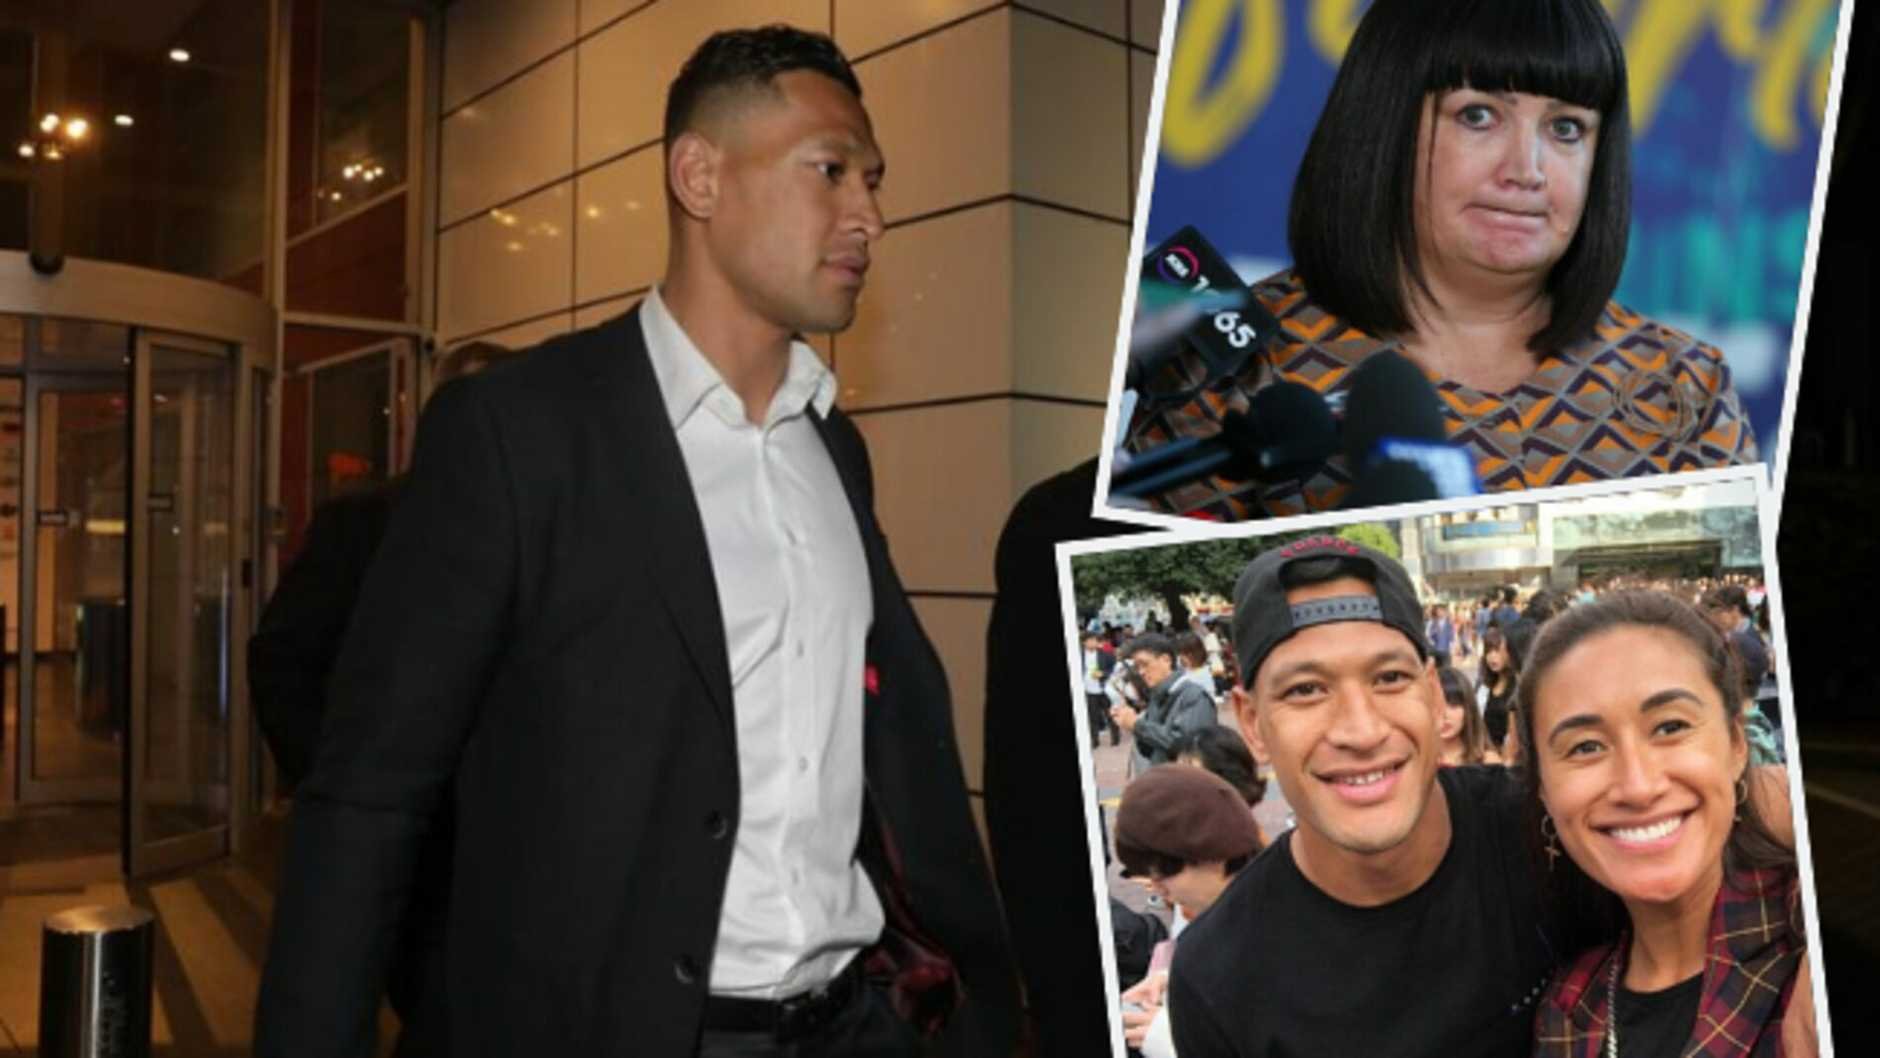 'Looking for an apology': Israel Folau set for fresh showdown with Rugby Australia